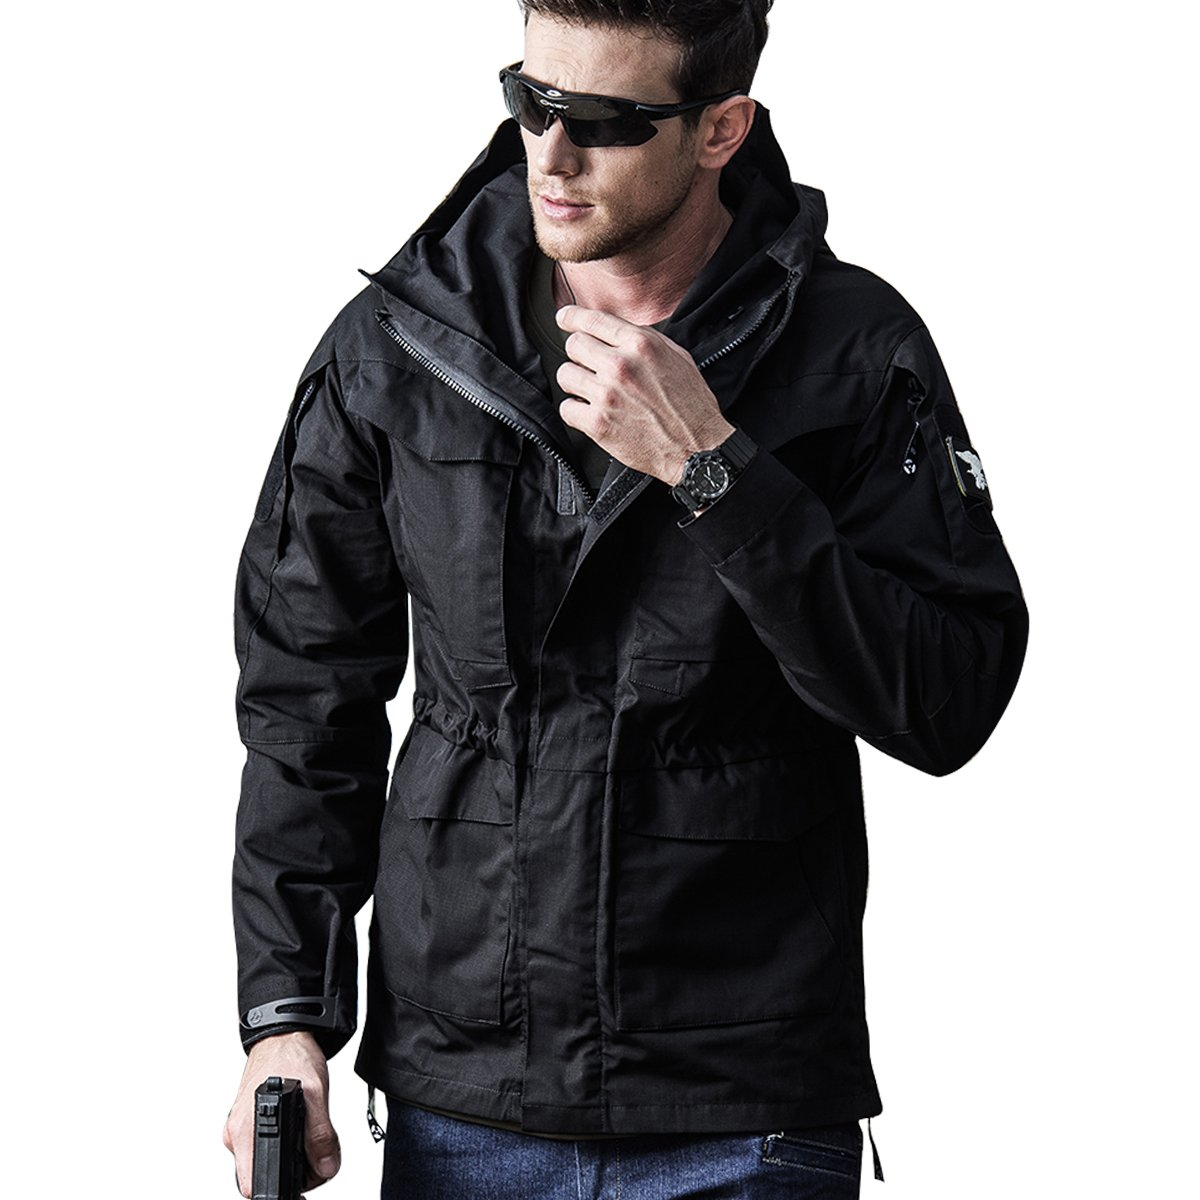 Men Outdoor Jacket Casual Tactical Waterproof Army Military Windbreaker Spring Rain Coat (L, Black)